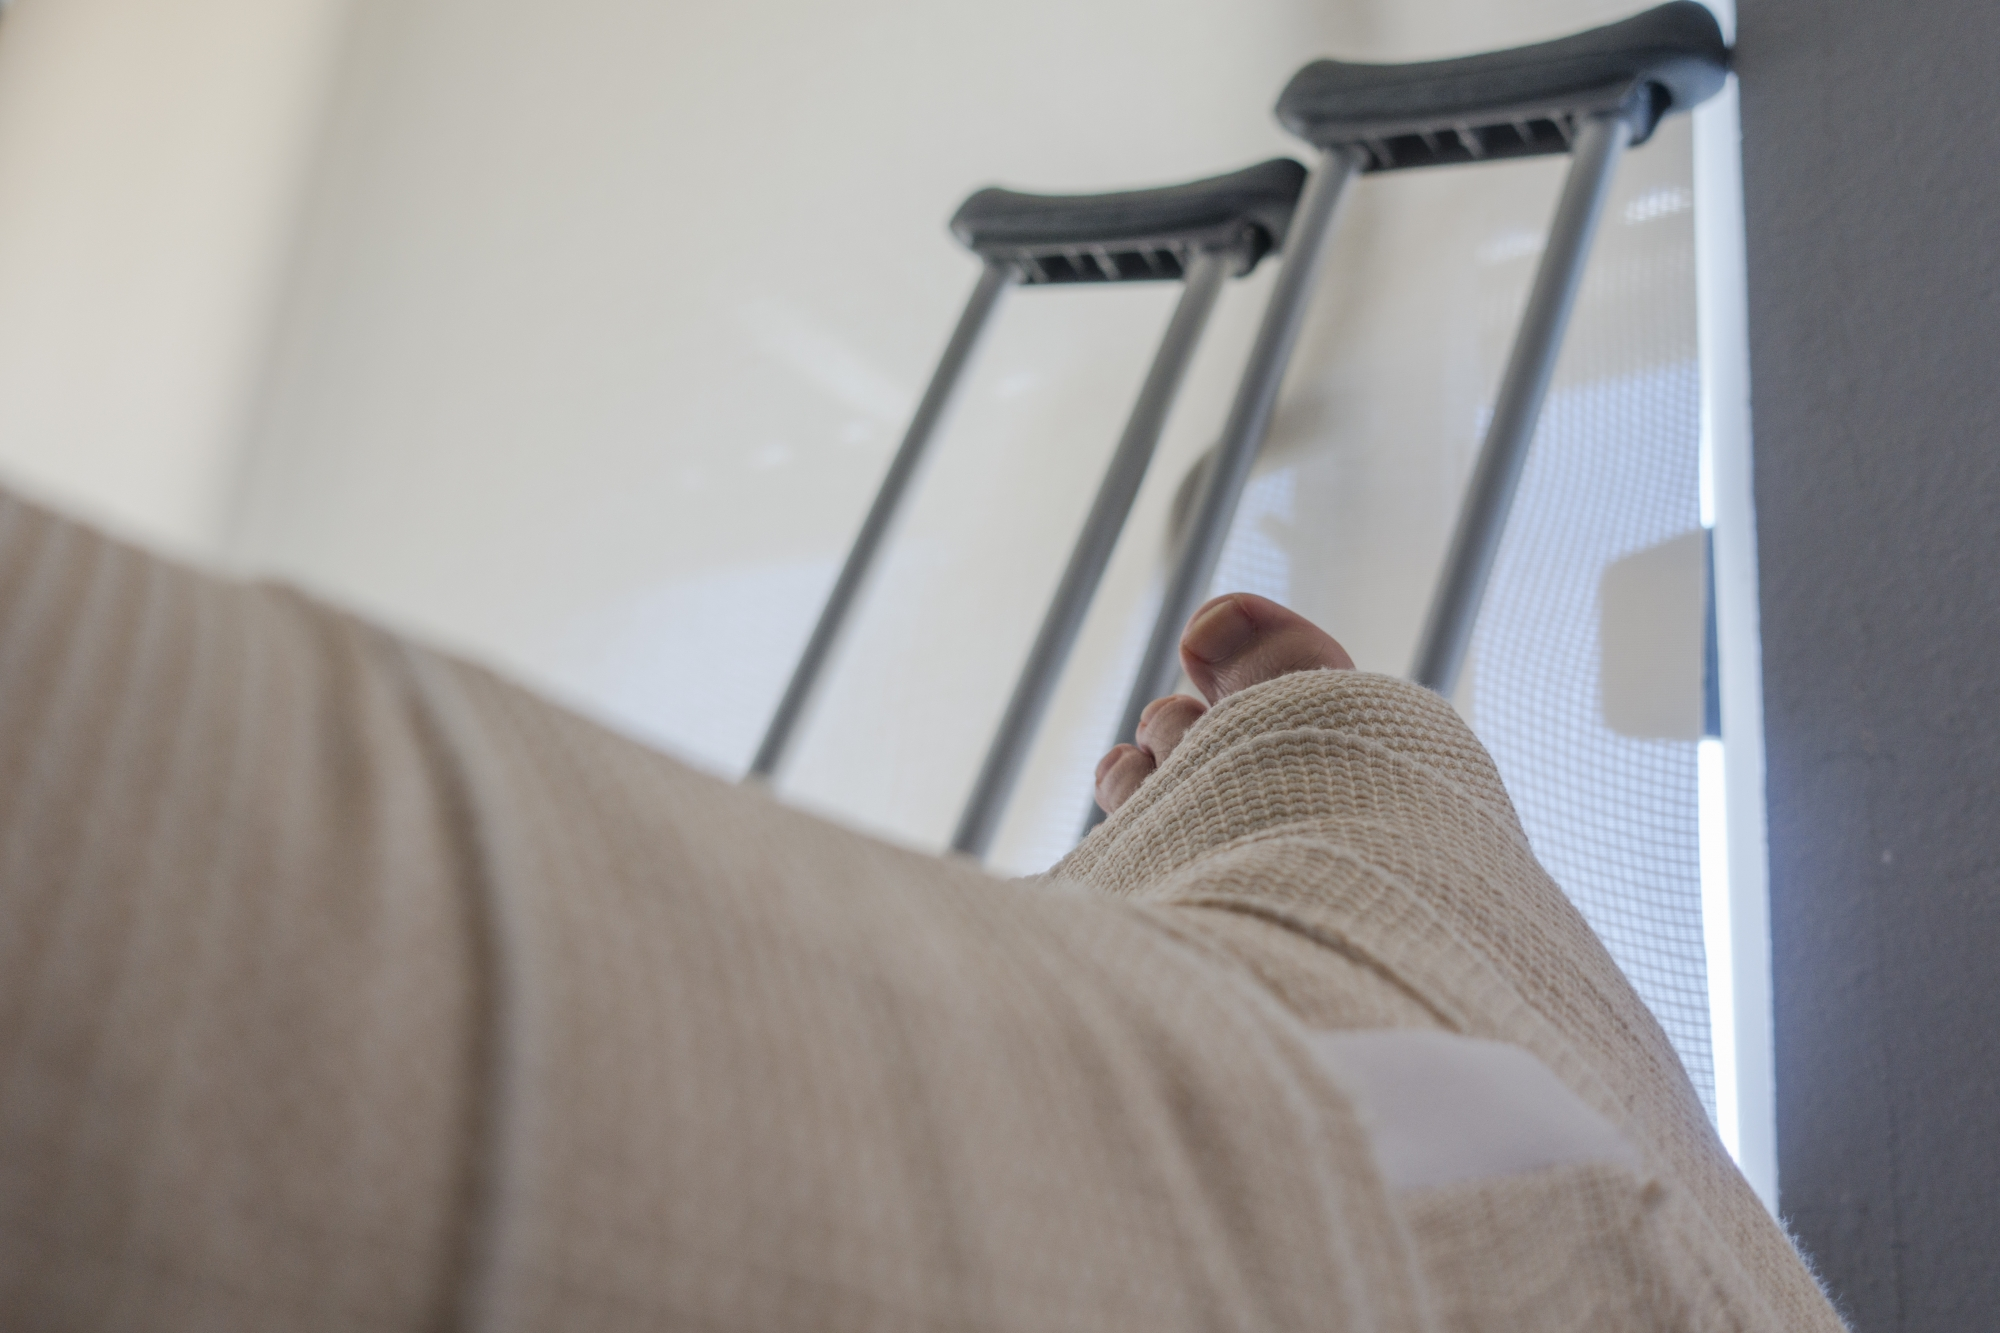 Compensation for Broken Legs, Arms, Other Accident Injuries